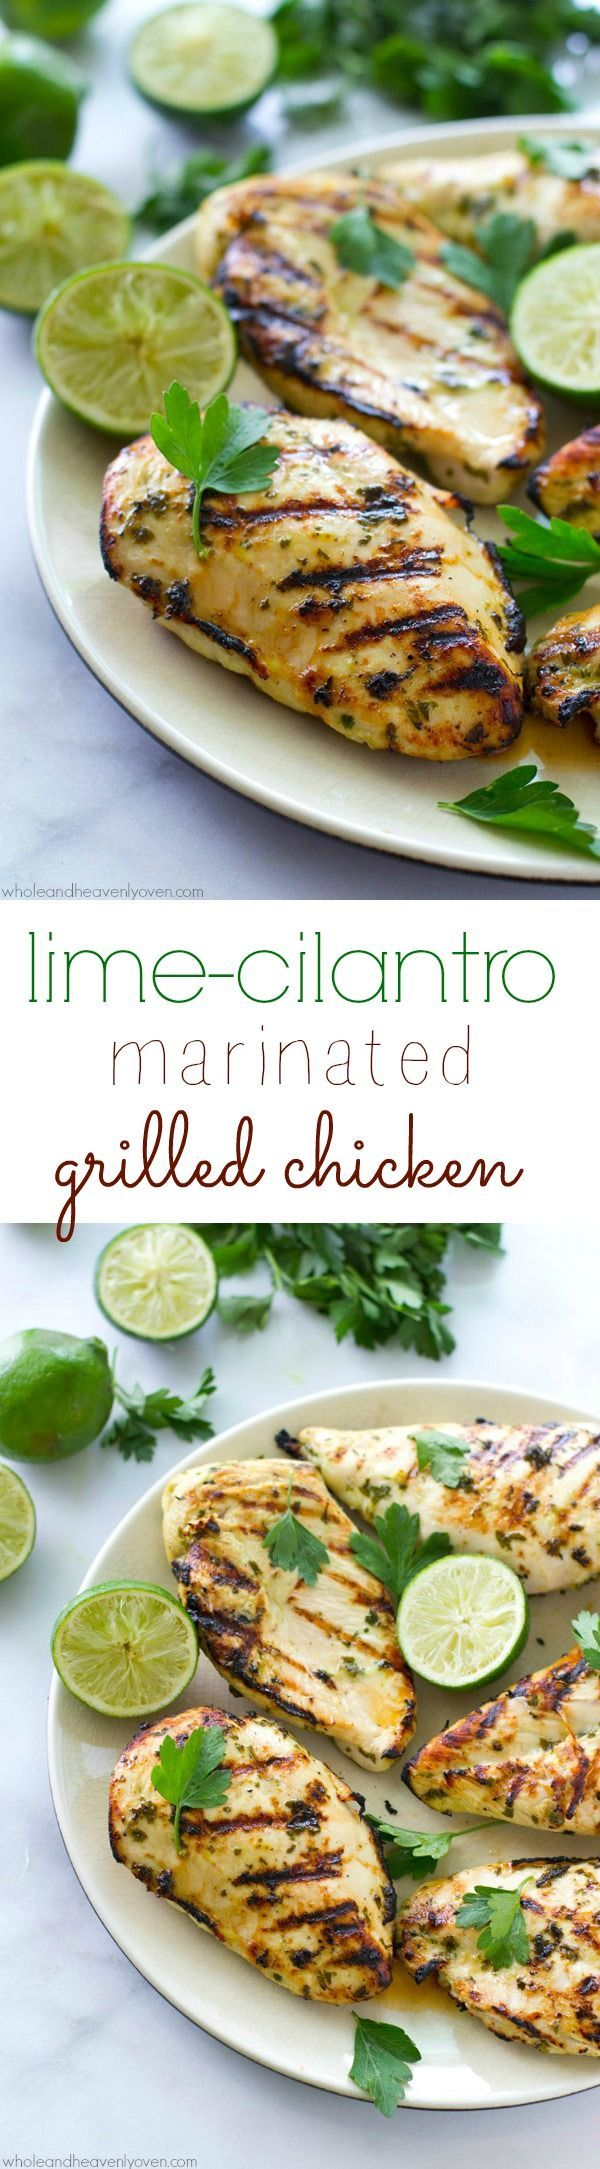 Marinated for hours in a flavorful lime cilantro marinade and then thrown onto the grill, this extra-juicy chicken delivers a punch of irresistible summer flavors!